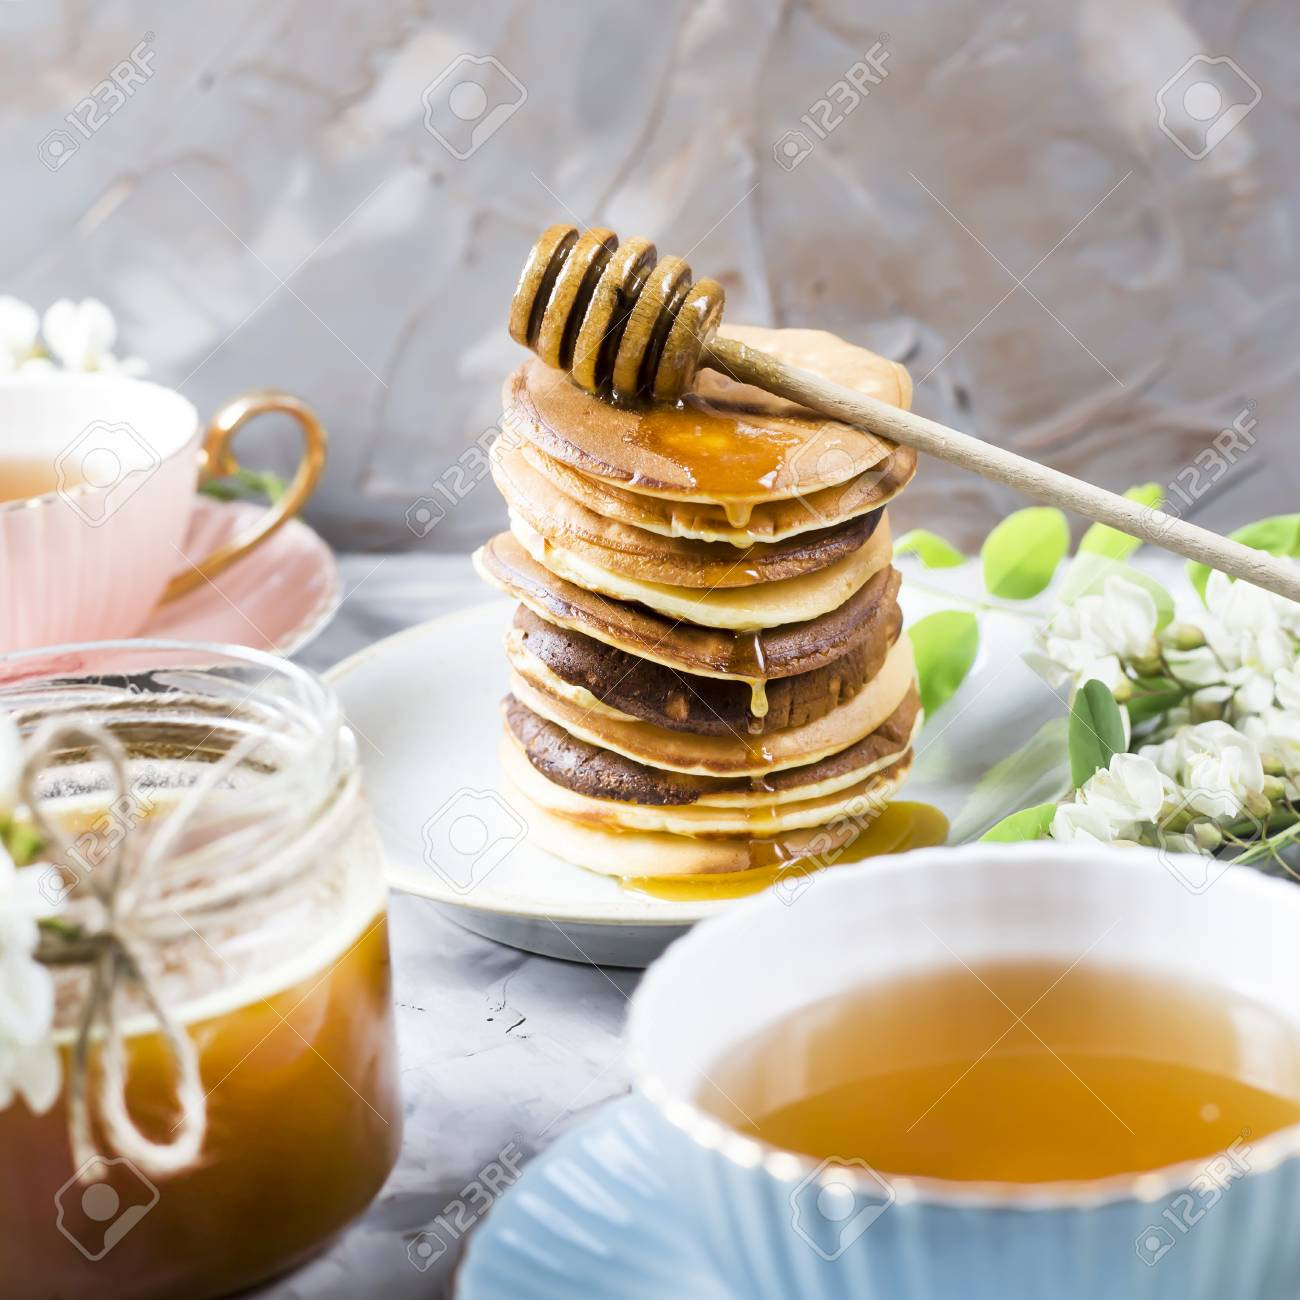 A Pile Of Fritters Next To A Cup Of Tea And A Jar Of Honey On